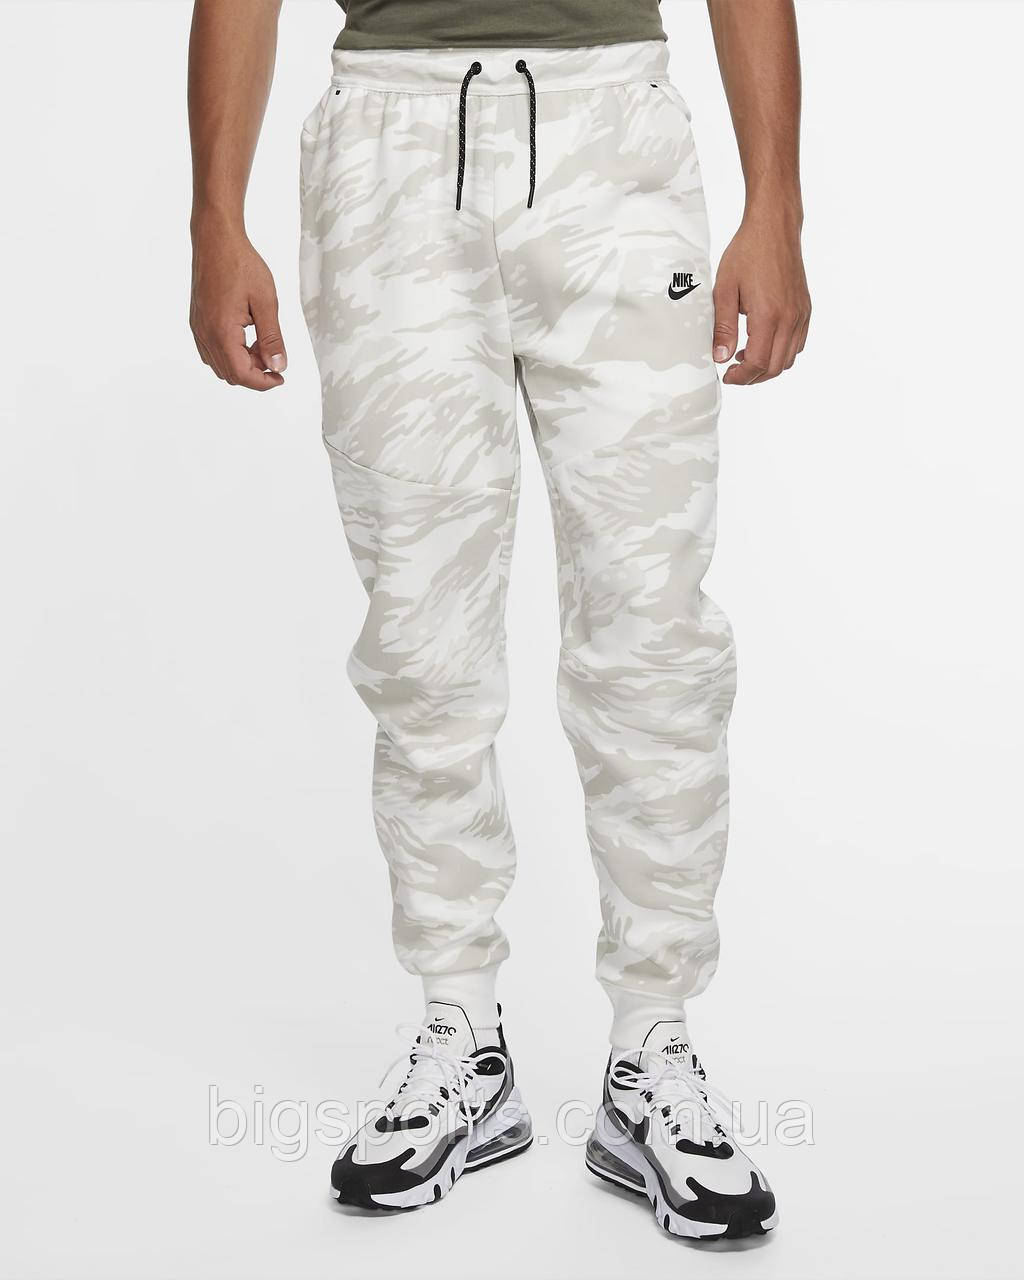 Штаны муж. Nike Sportswear Tech Fleece Joggers All Over Print (арт. CU4497-121)